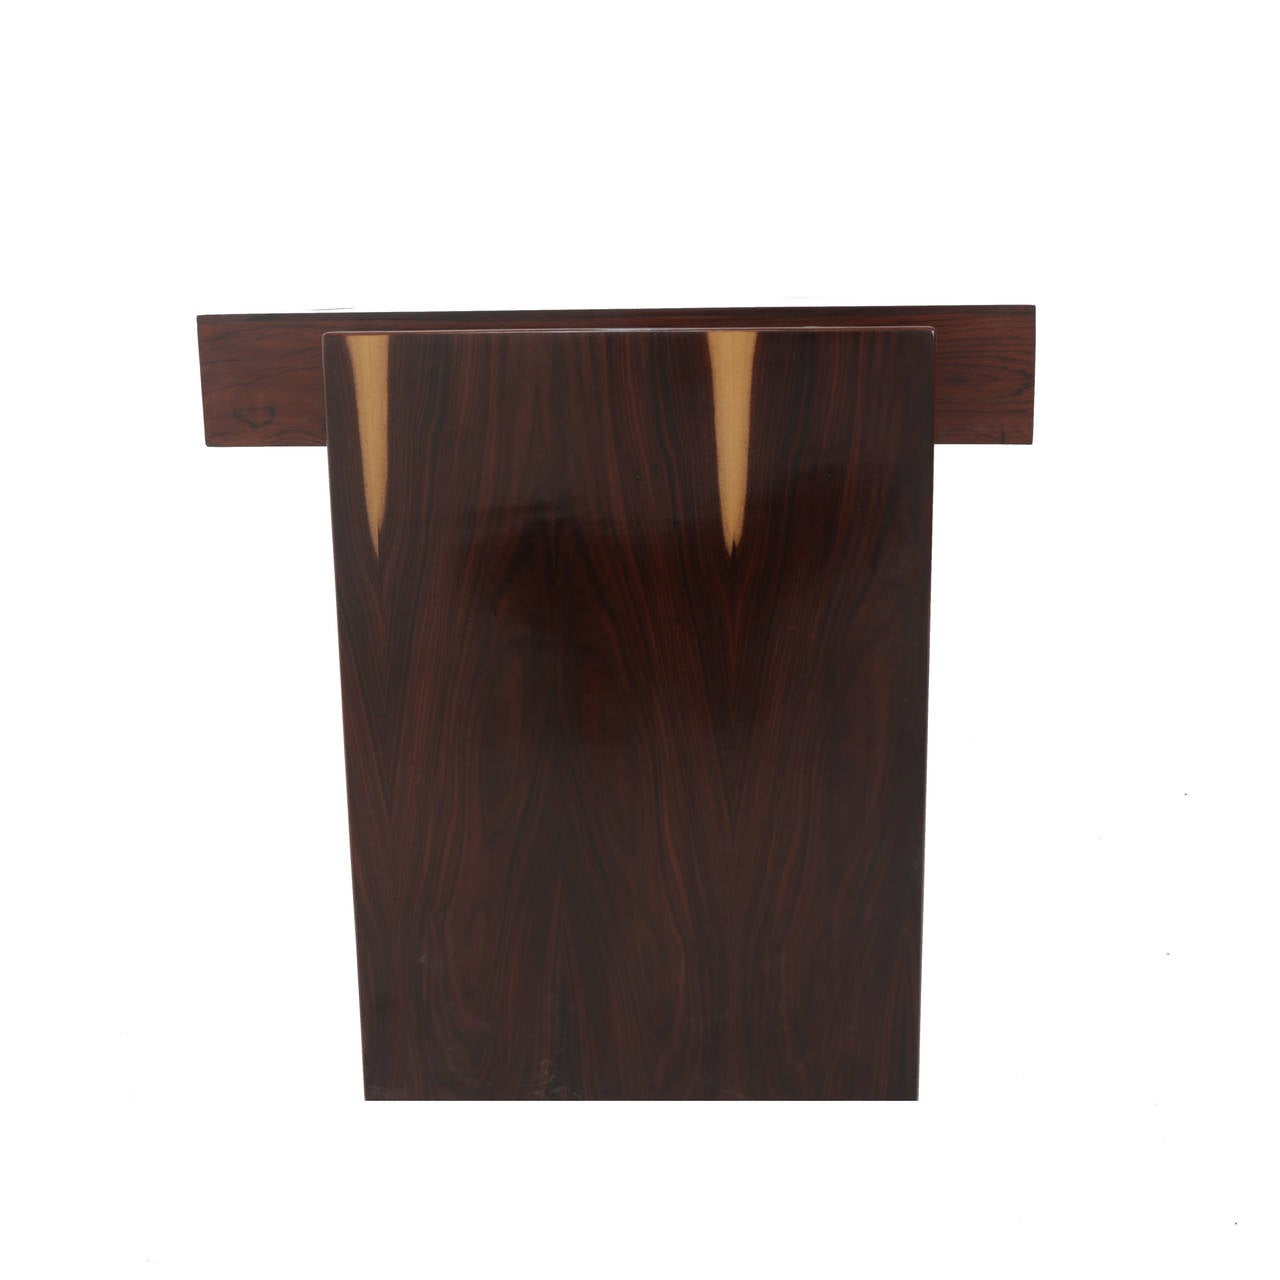 Rosewood and Glass Desk by Joaquim Tenreiro For Sale 1